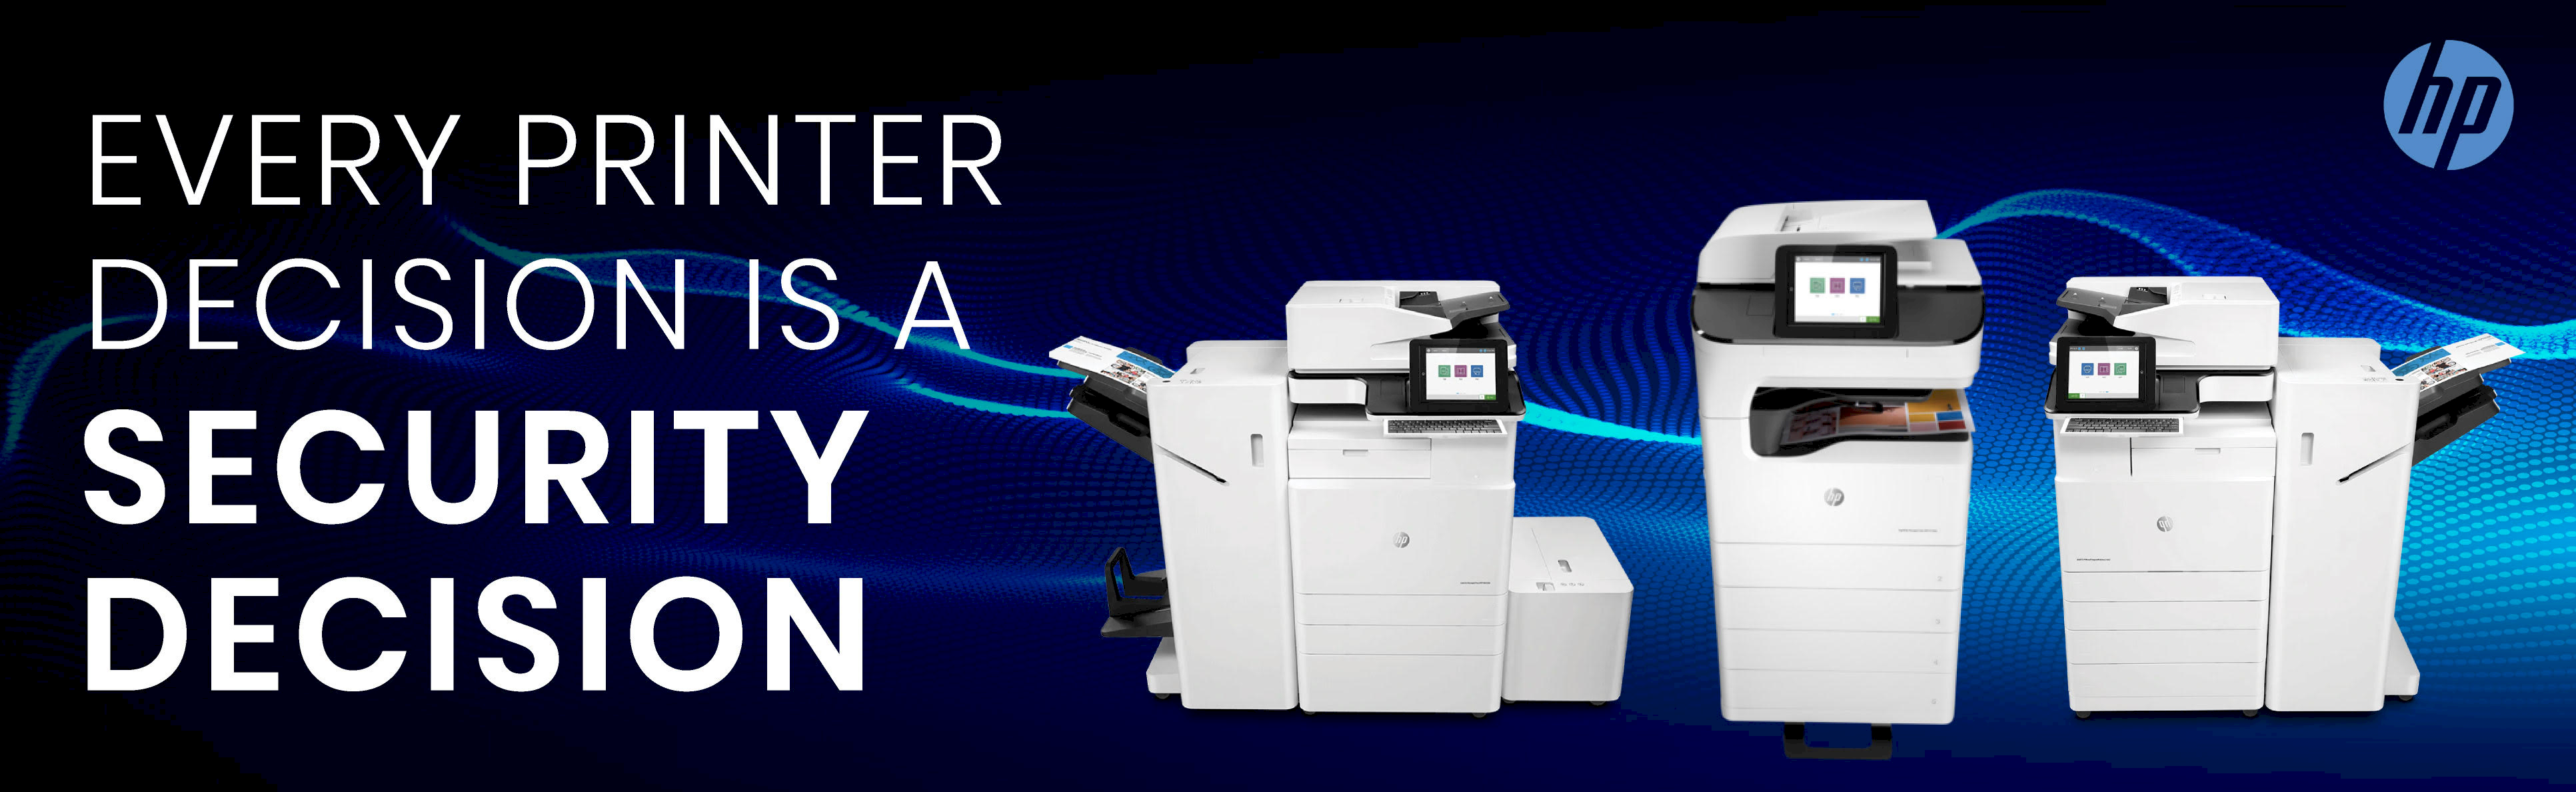 HP Color Printers